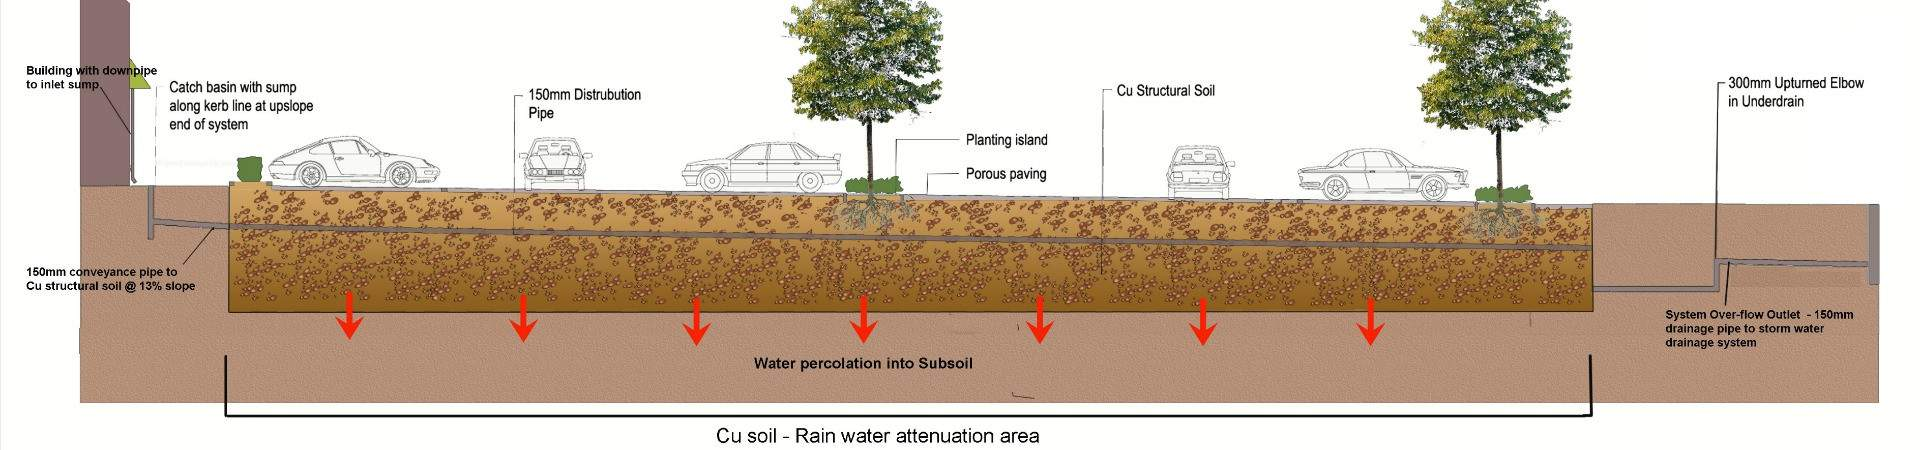 CU Structural Tree Soil